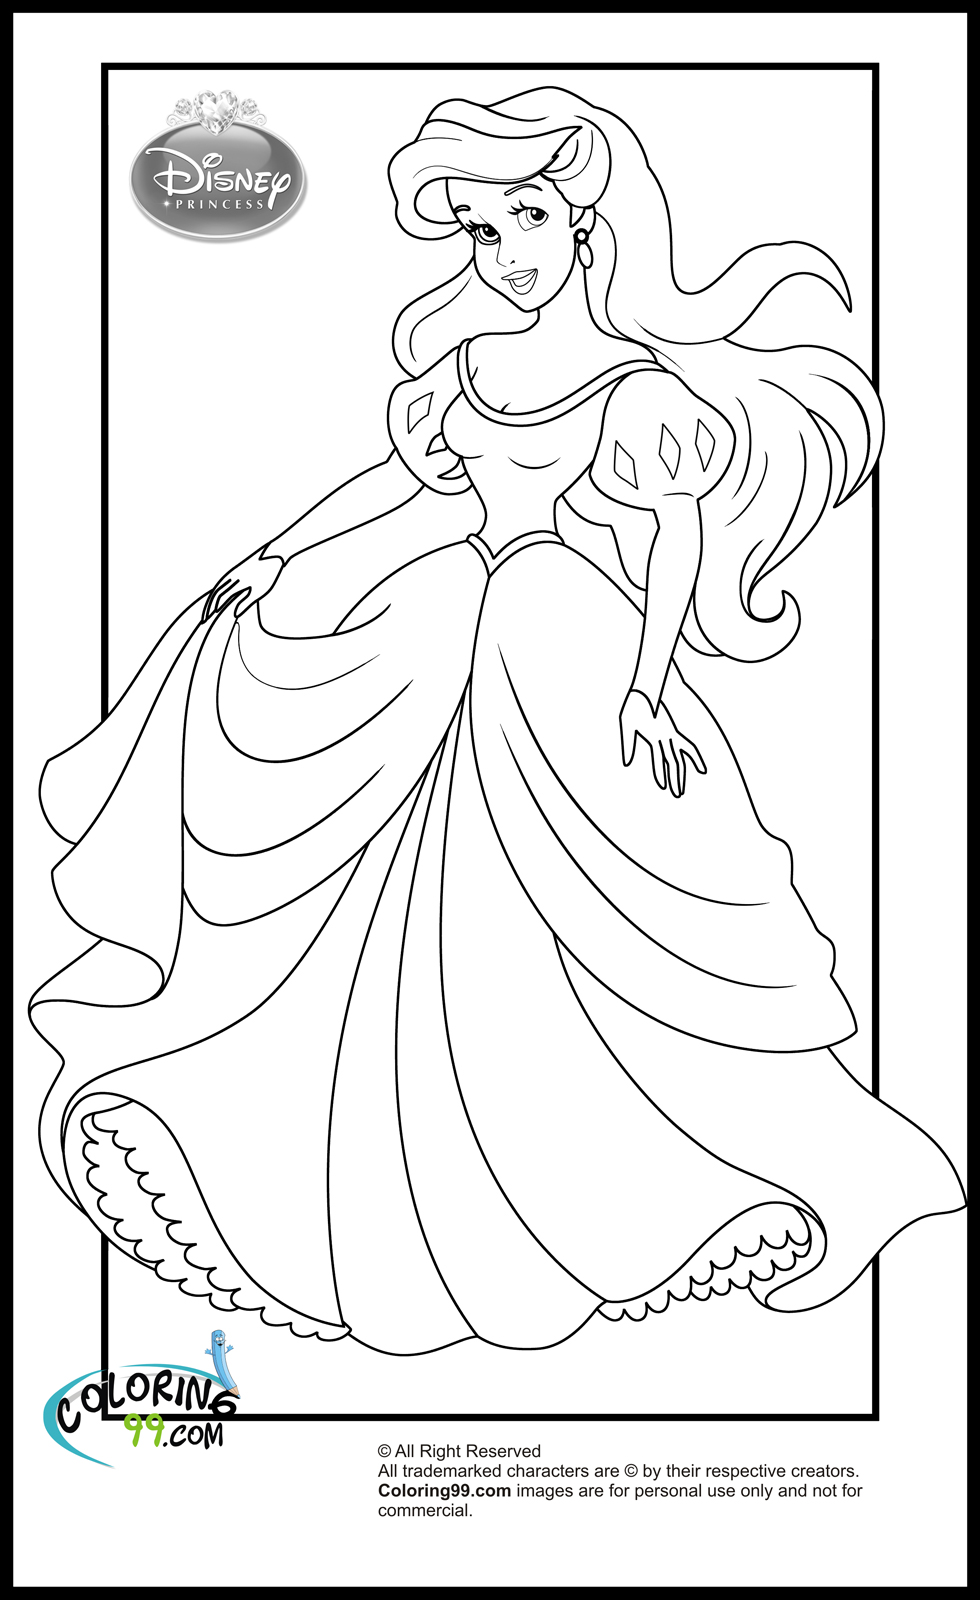 Disney Princess Coloring Pages Team Colors Disney Princess Coloring Pages